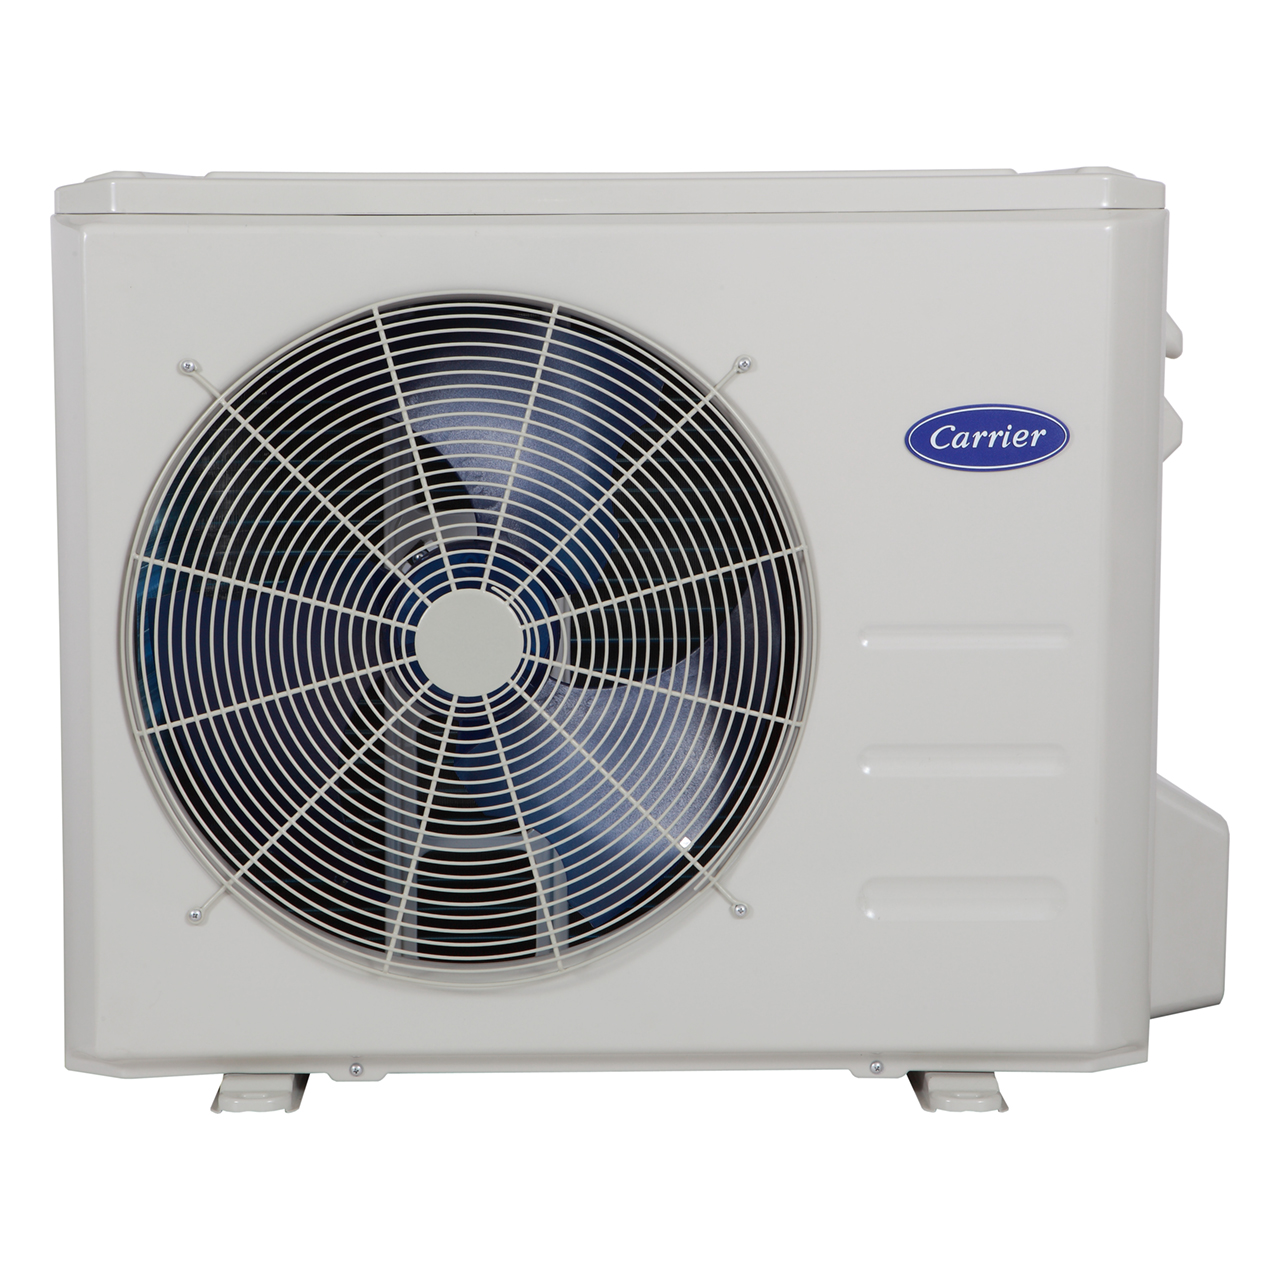 carrier-38MPRA-ductless-system-outdoor-heat-pump-with-basepan-heater